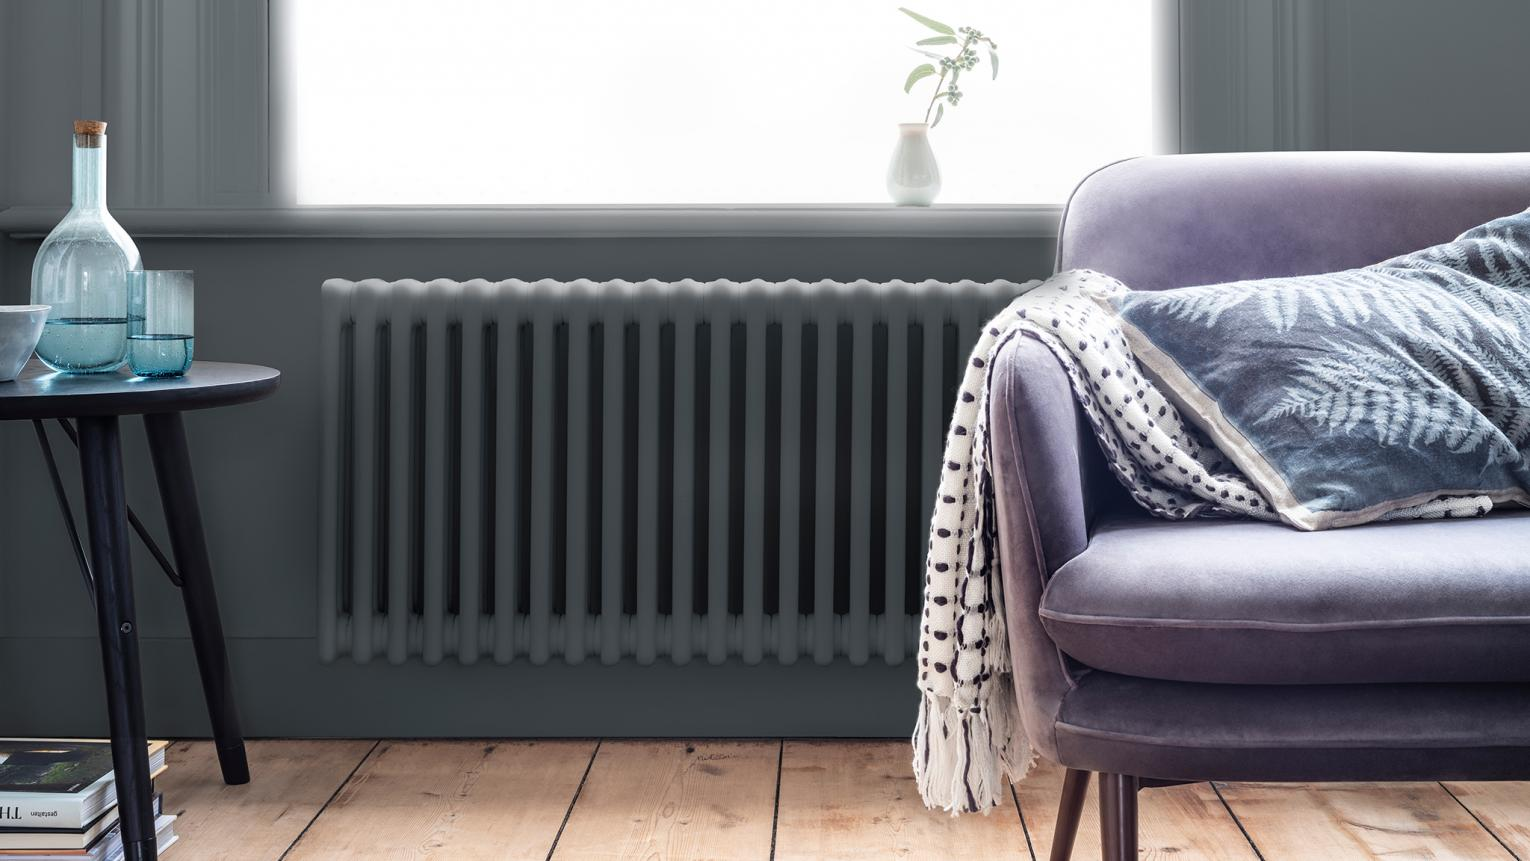 dulux-simply-refresh-radiators-ideas-global-1